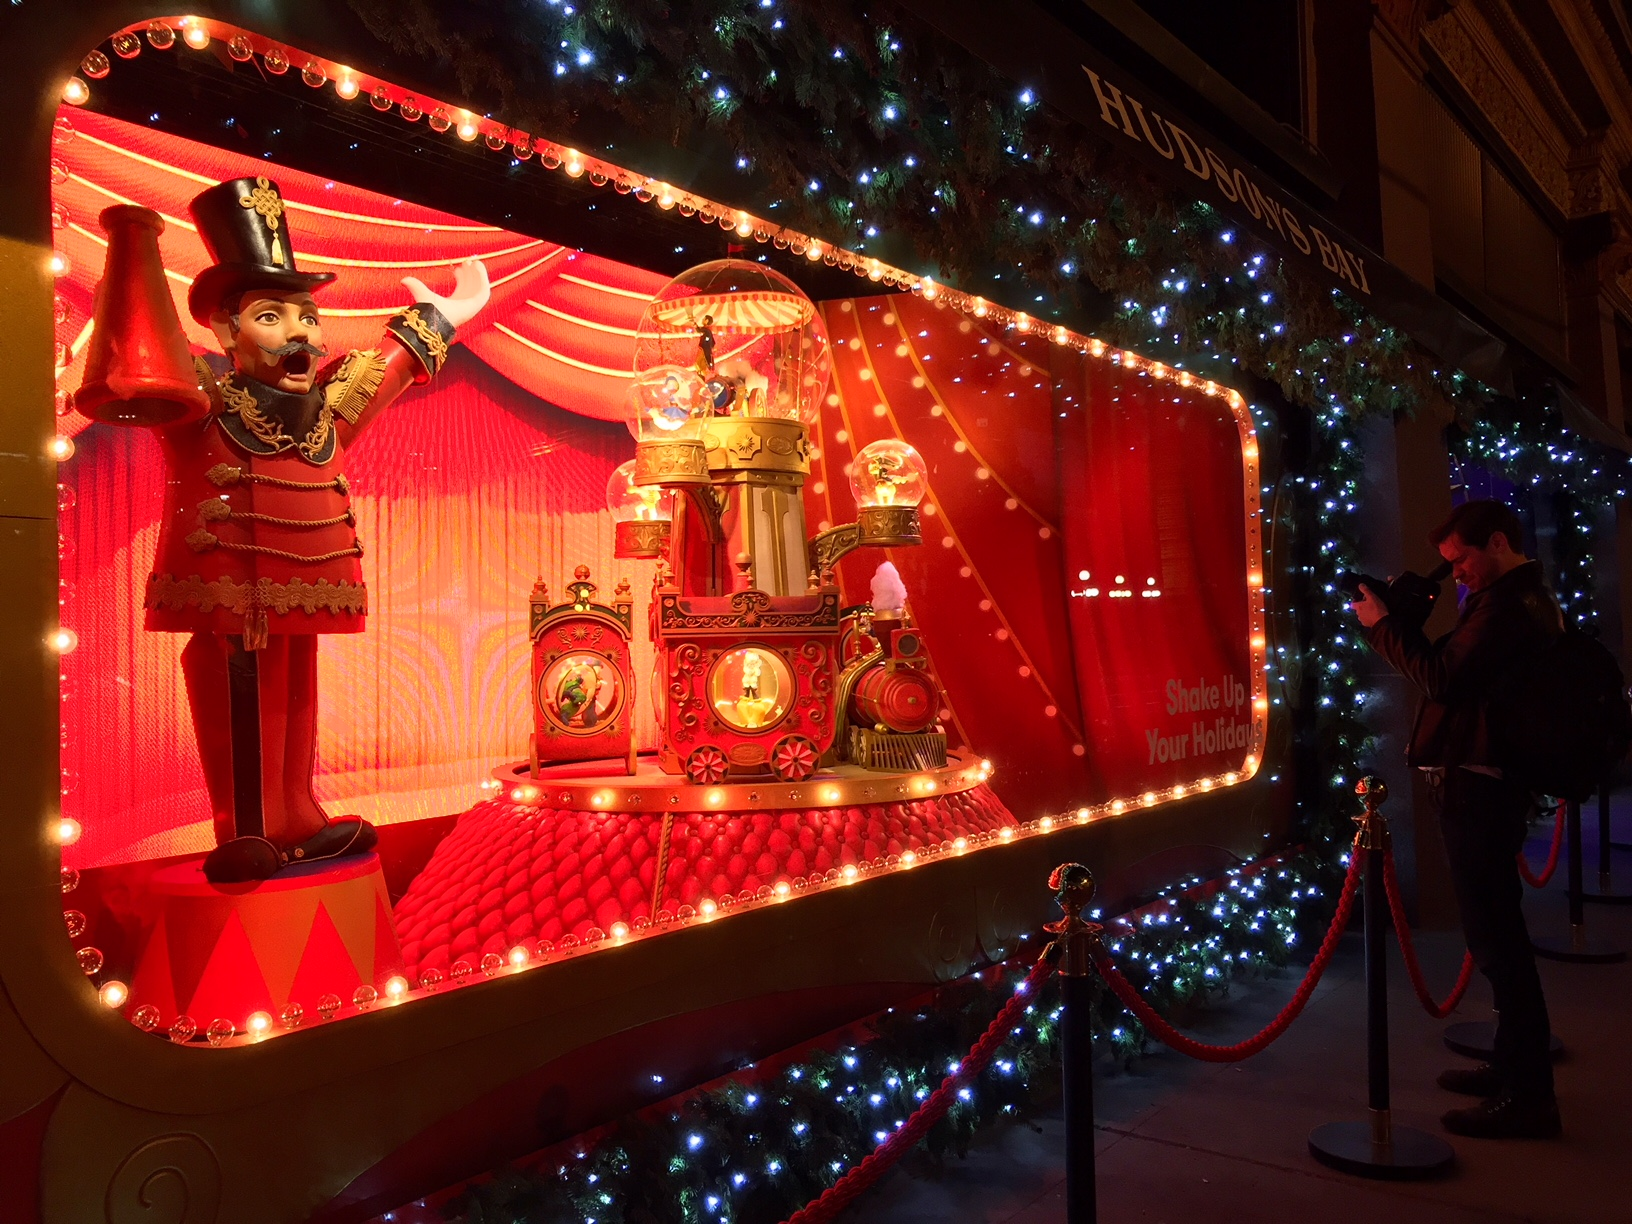 The Hudson's Bay and Saks Fifth Avenue holiday windows downtown Toronto are a spectacle for the Christmas season. (Photo: Regina Dickson/CanCulture)